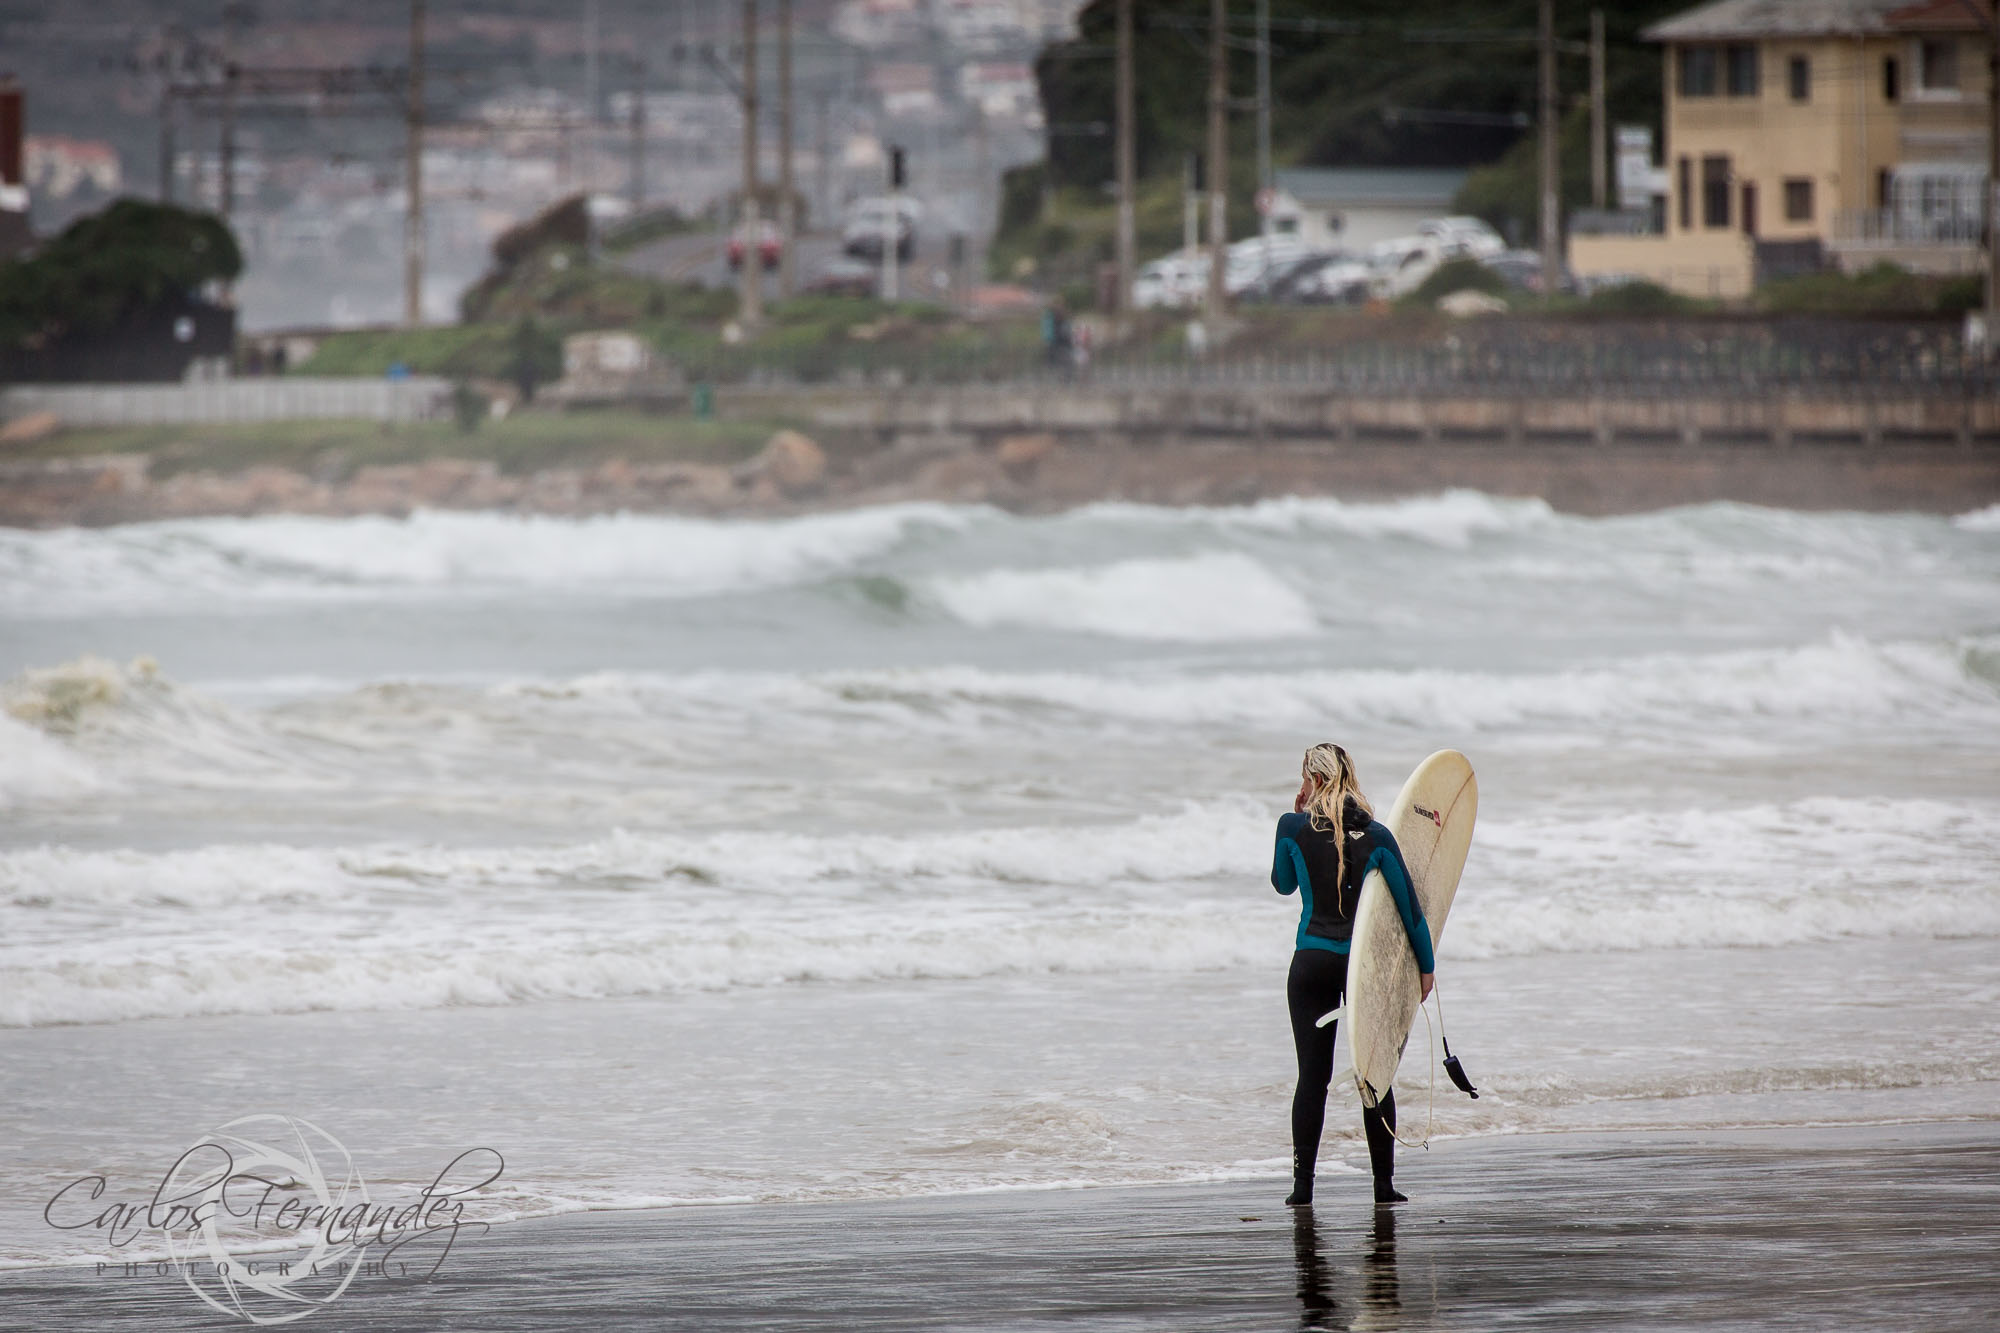 Checking Out the Surf in Muizenberg - 201/365